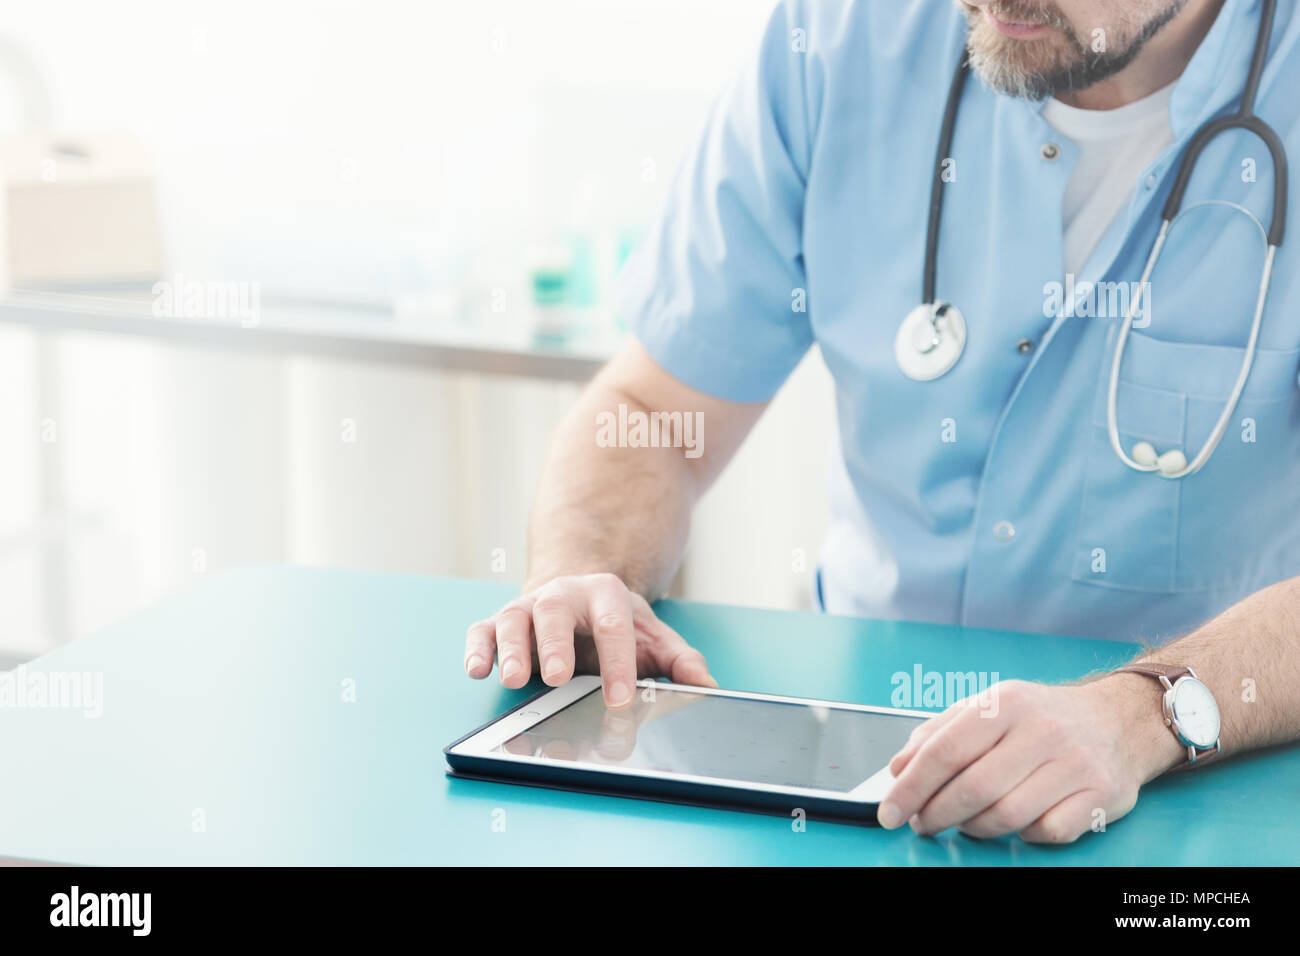 Close-up of doctor with stethoscope using tablet during work - Stock Image